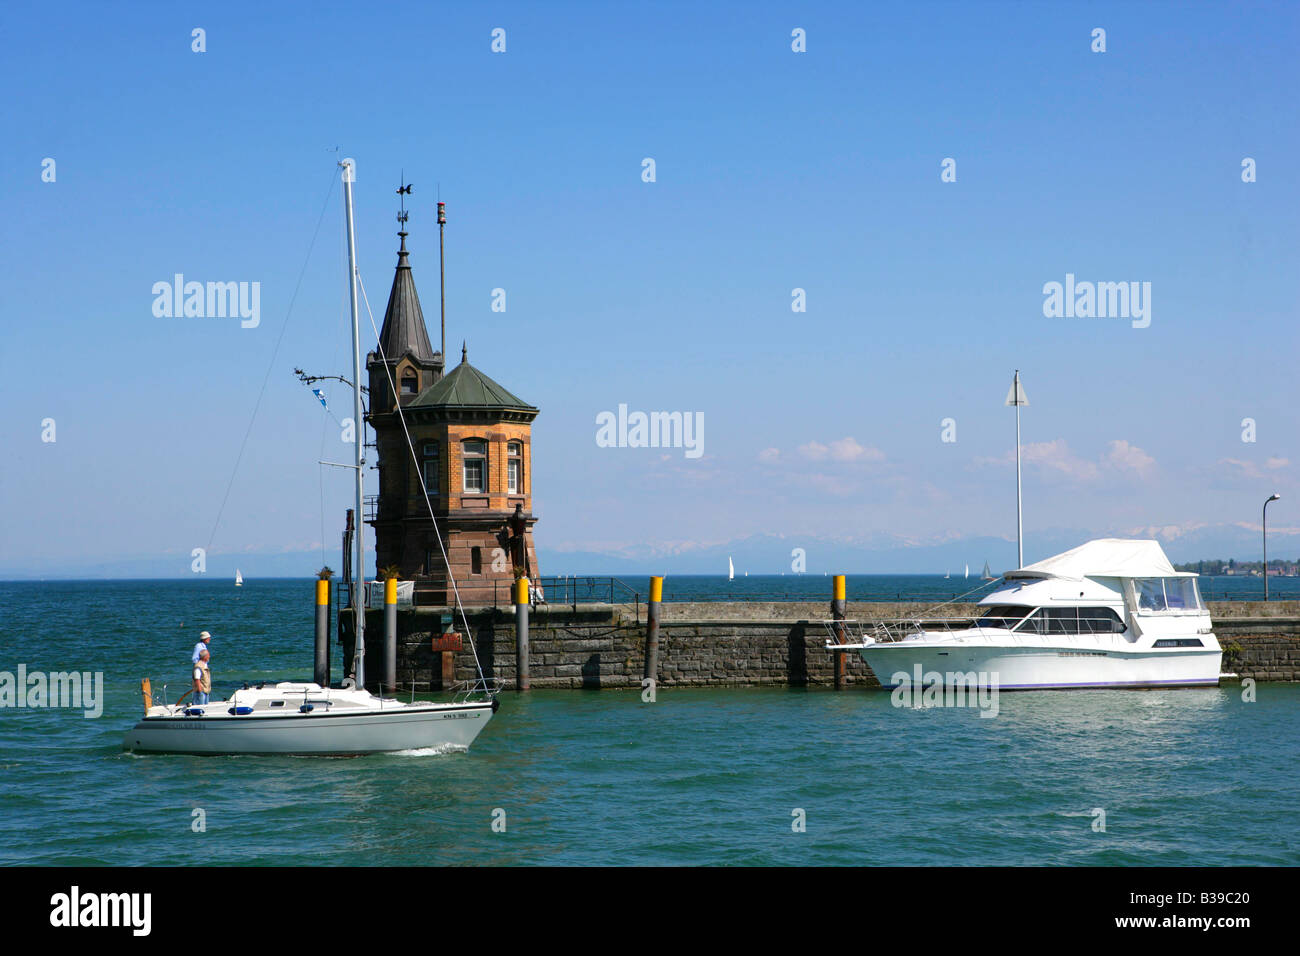 Deutschland, Konstanz am Bodensee, Germany Constance at the lake constance Stock Photo